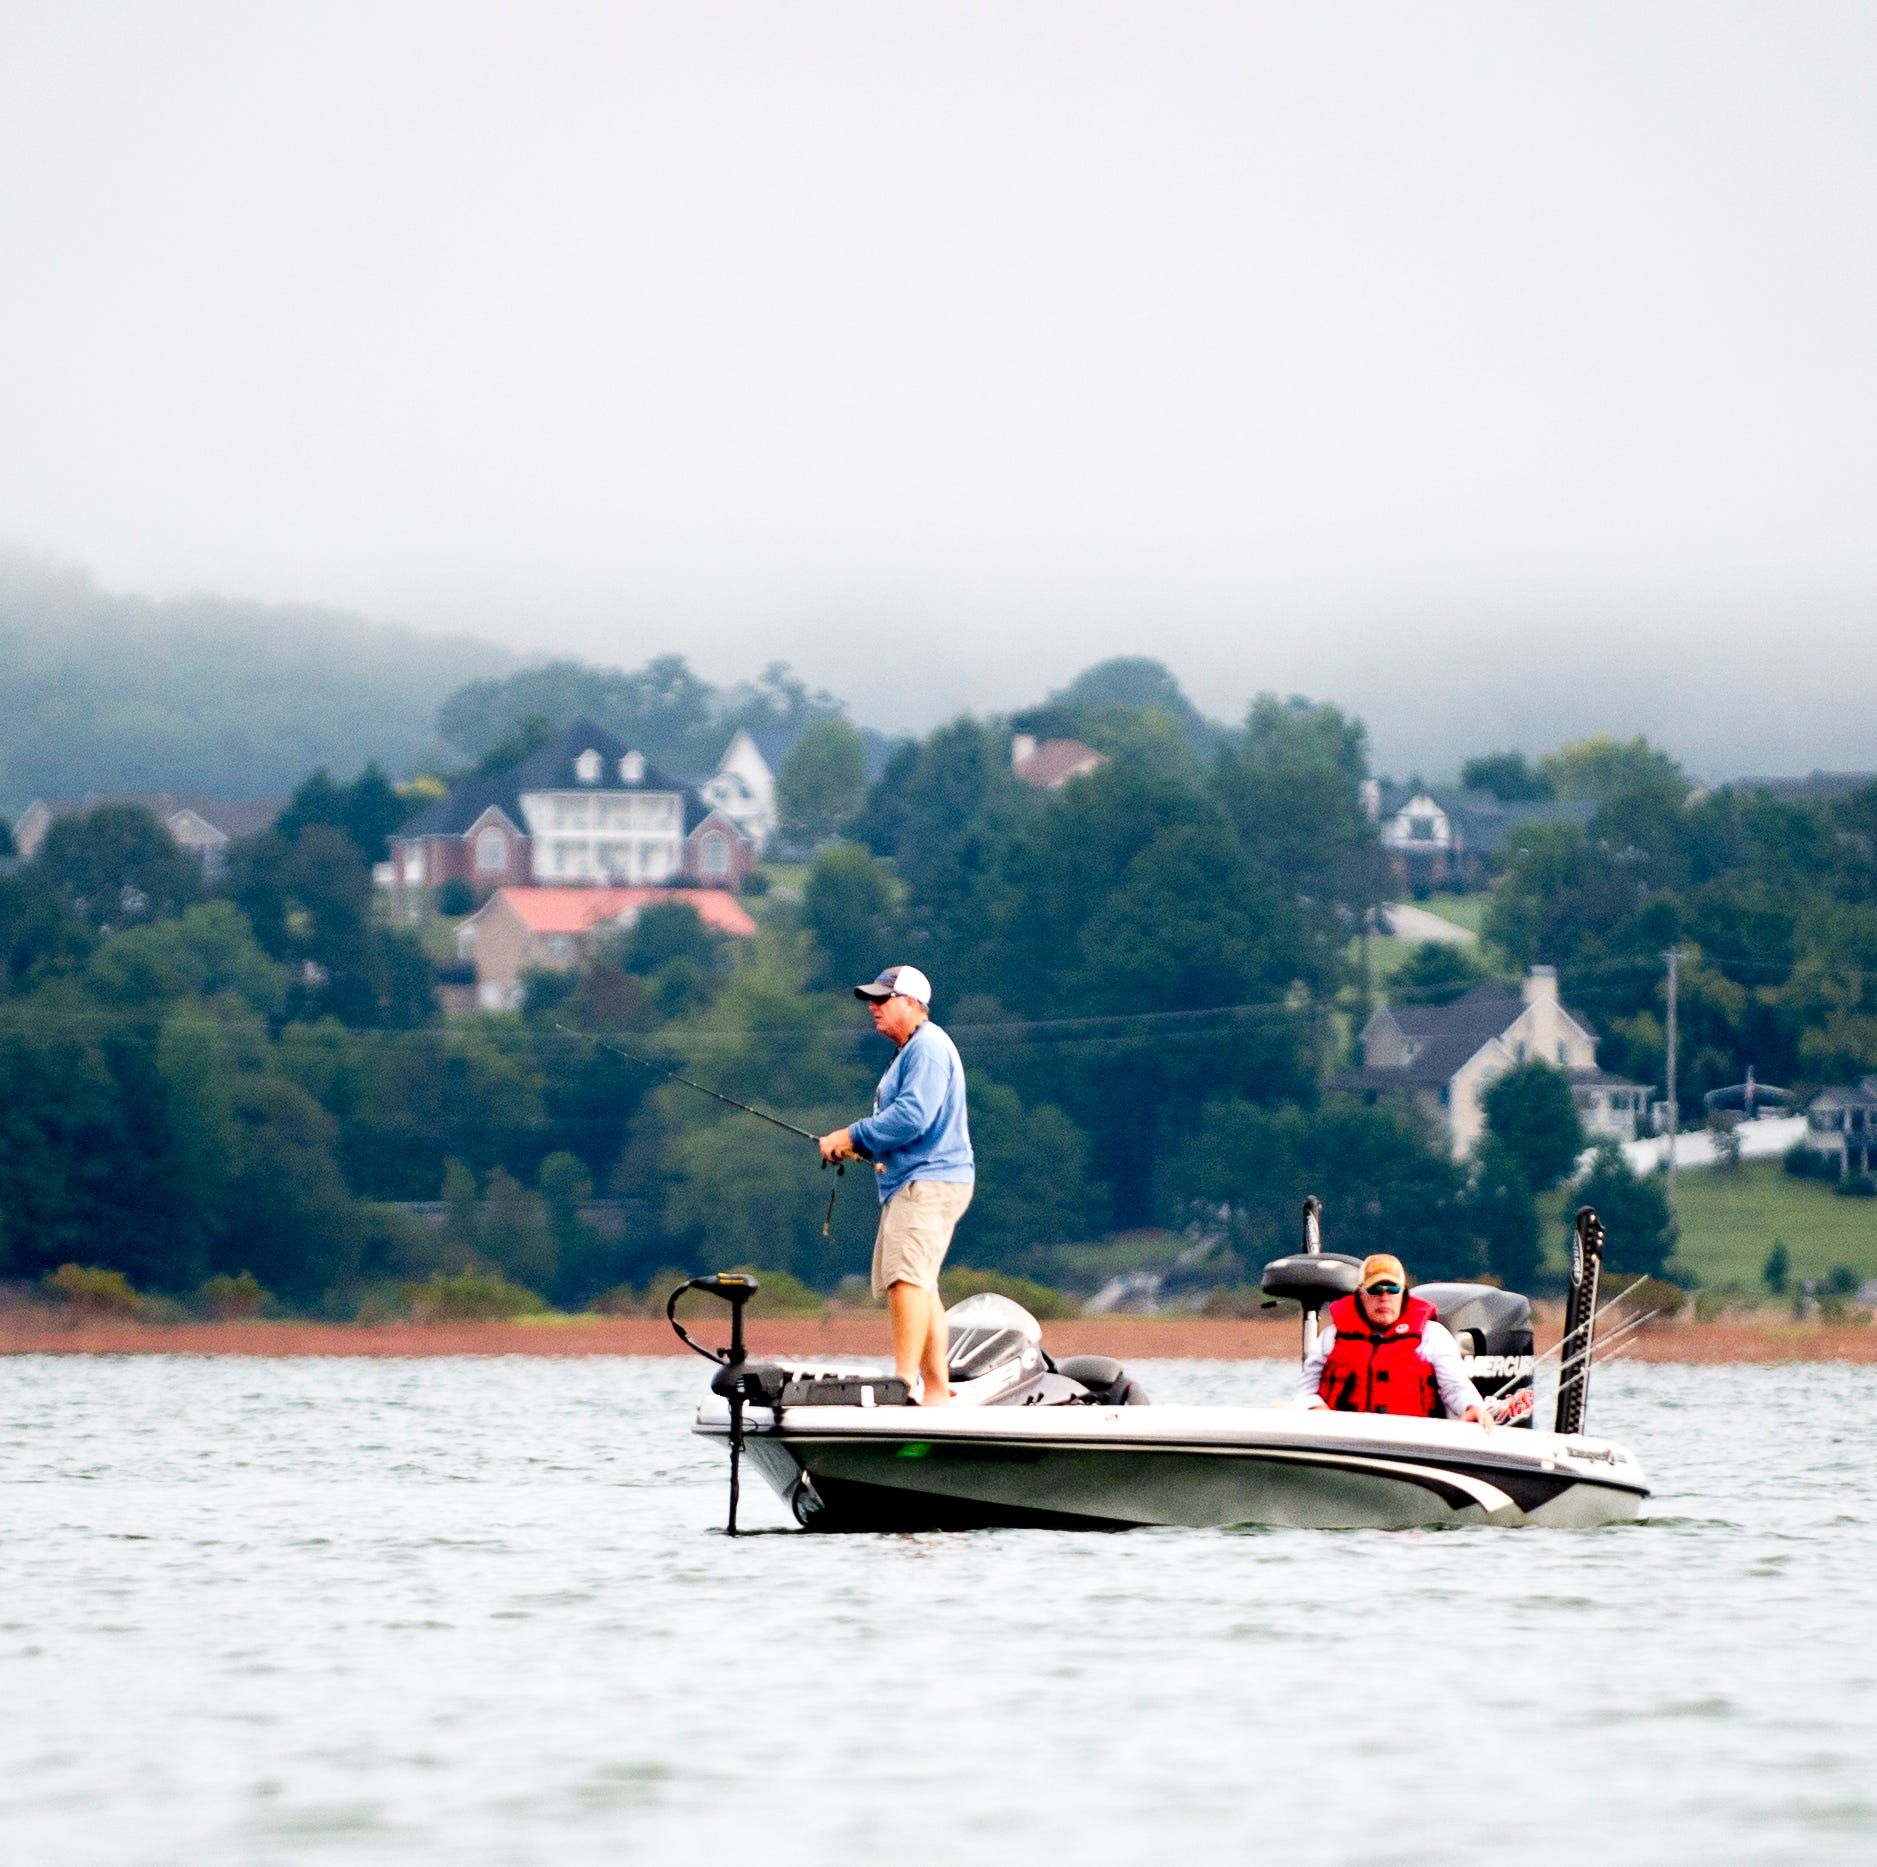 'Super Bowl of Bass Fishing': Knoxville readying to host first Bassmaster Classic